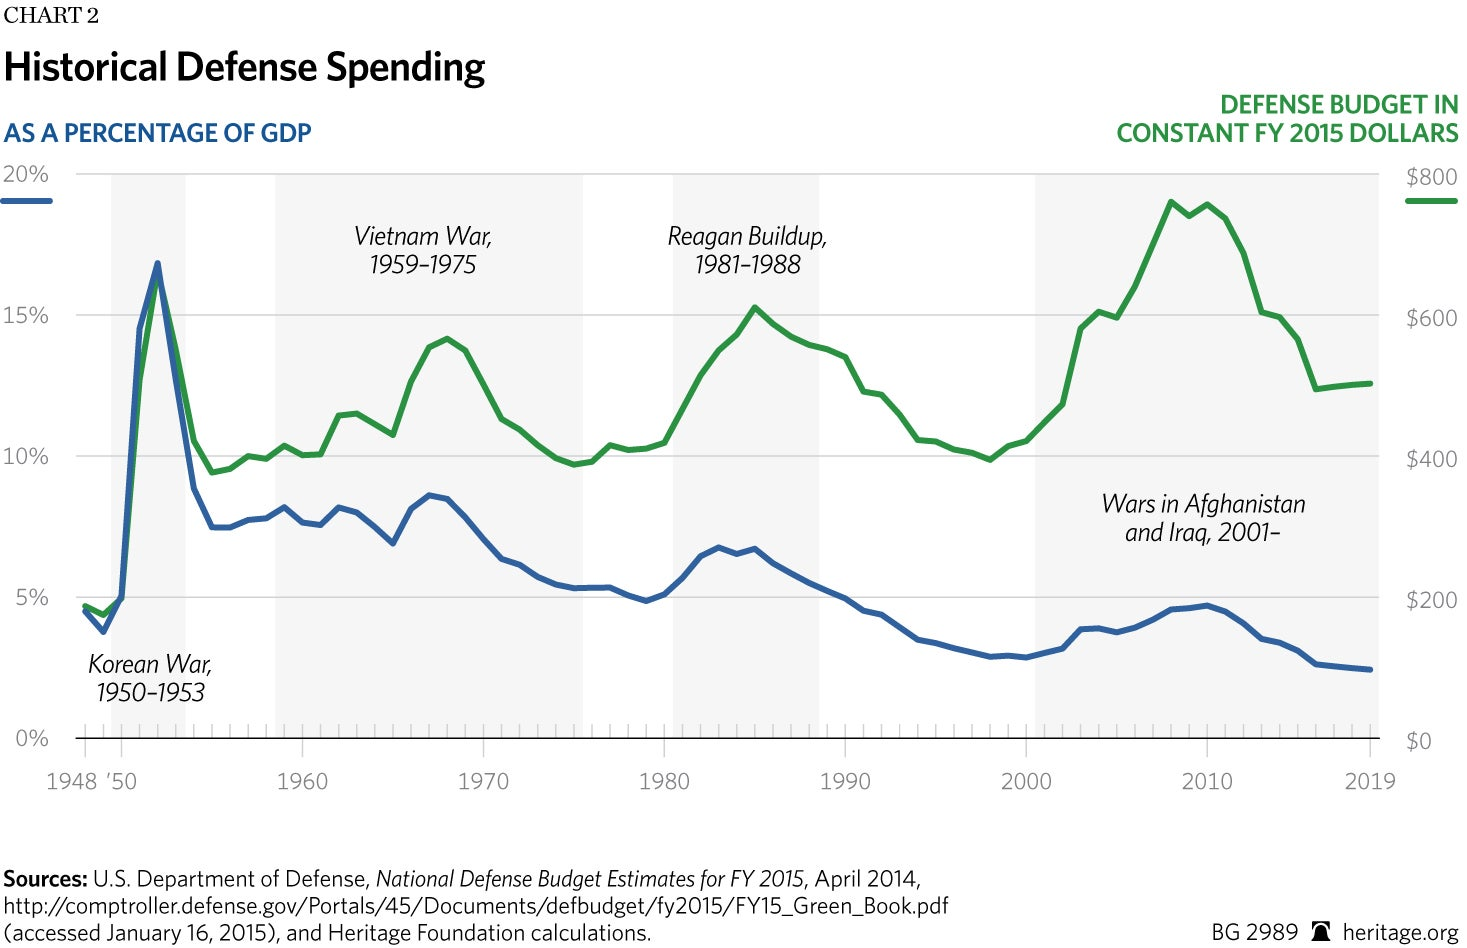 BG-defense-spending-FY-2016-chart-2_HIGH